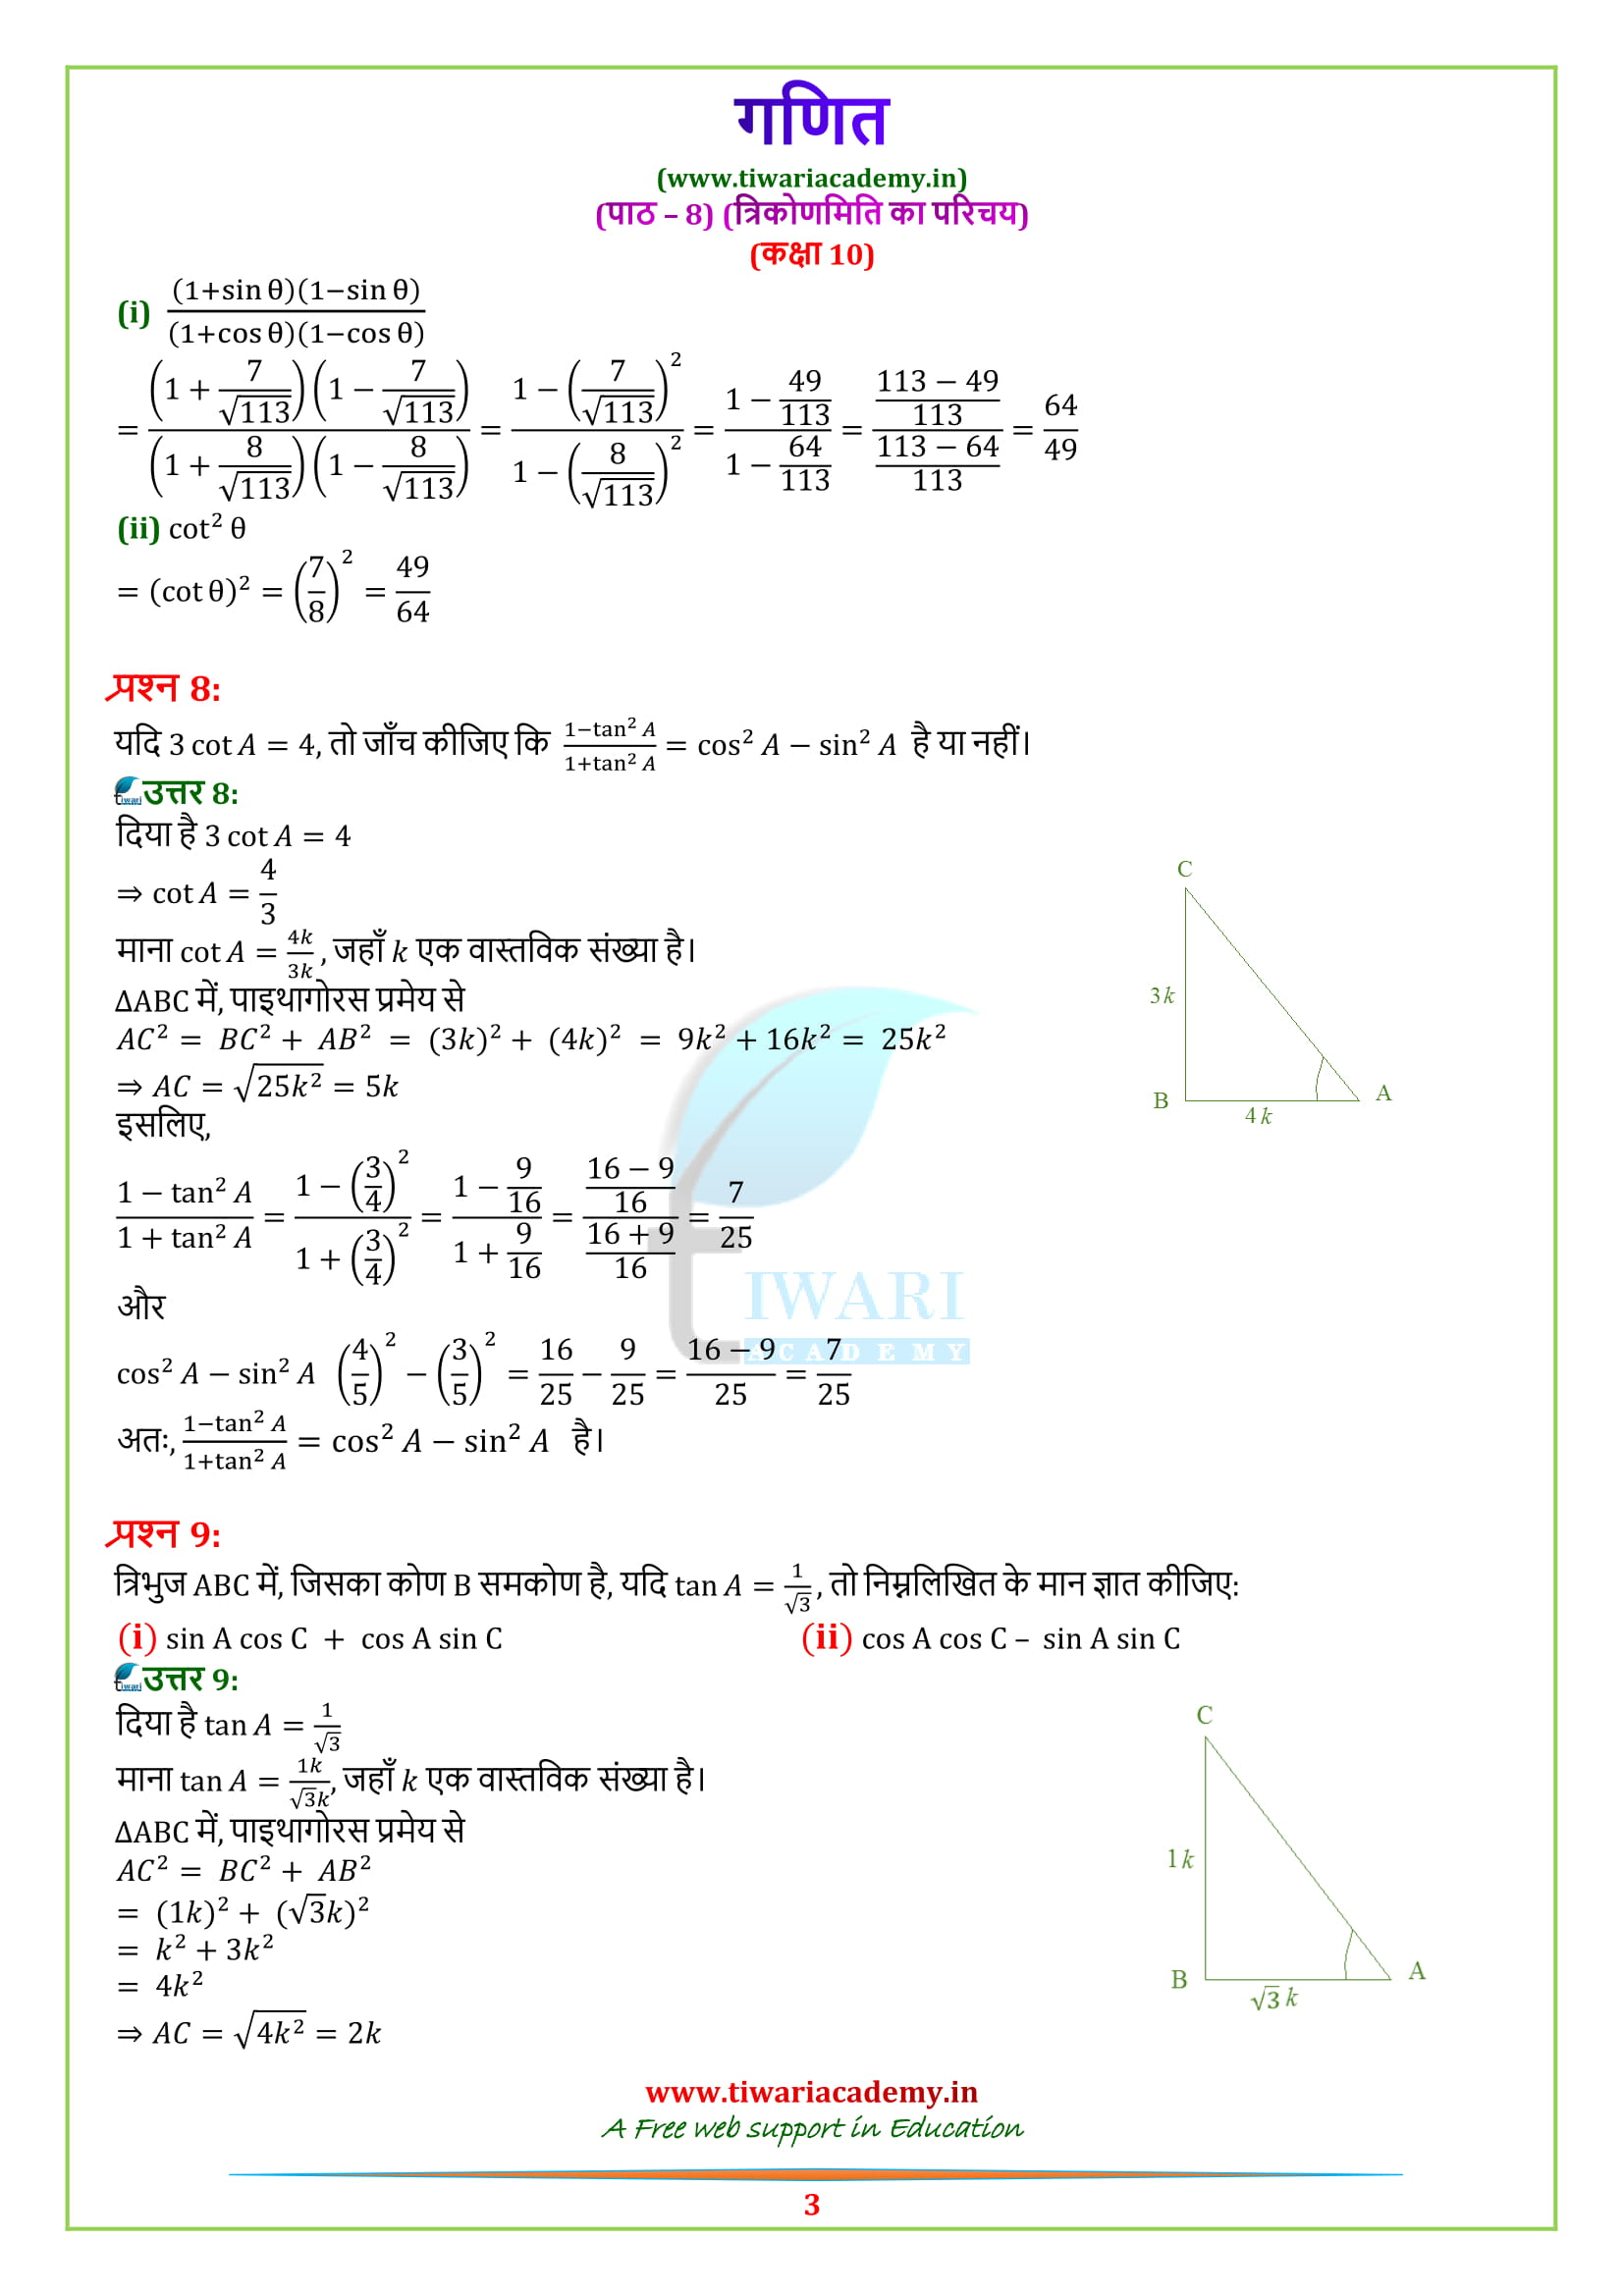 Class 10 Maths Exercise 8.1 Solutions updated for high school up board